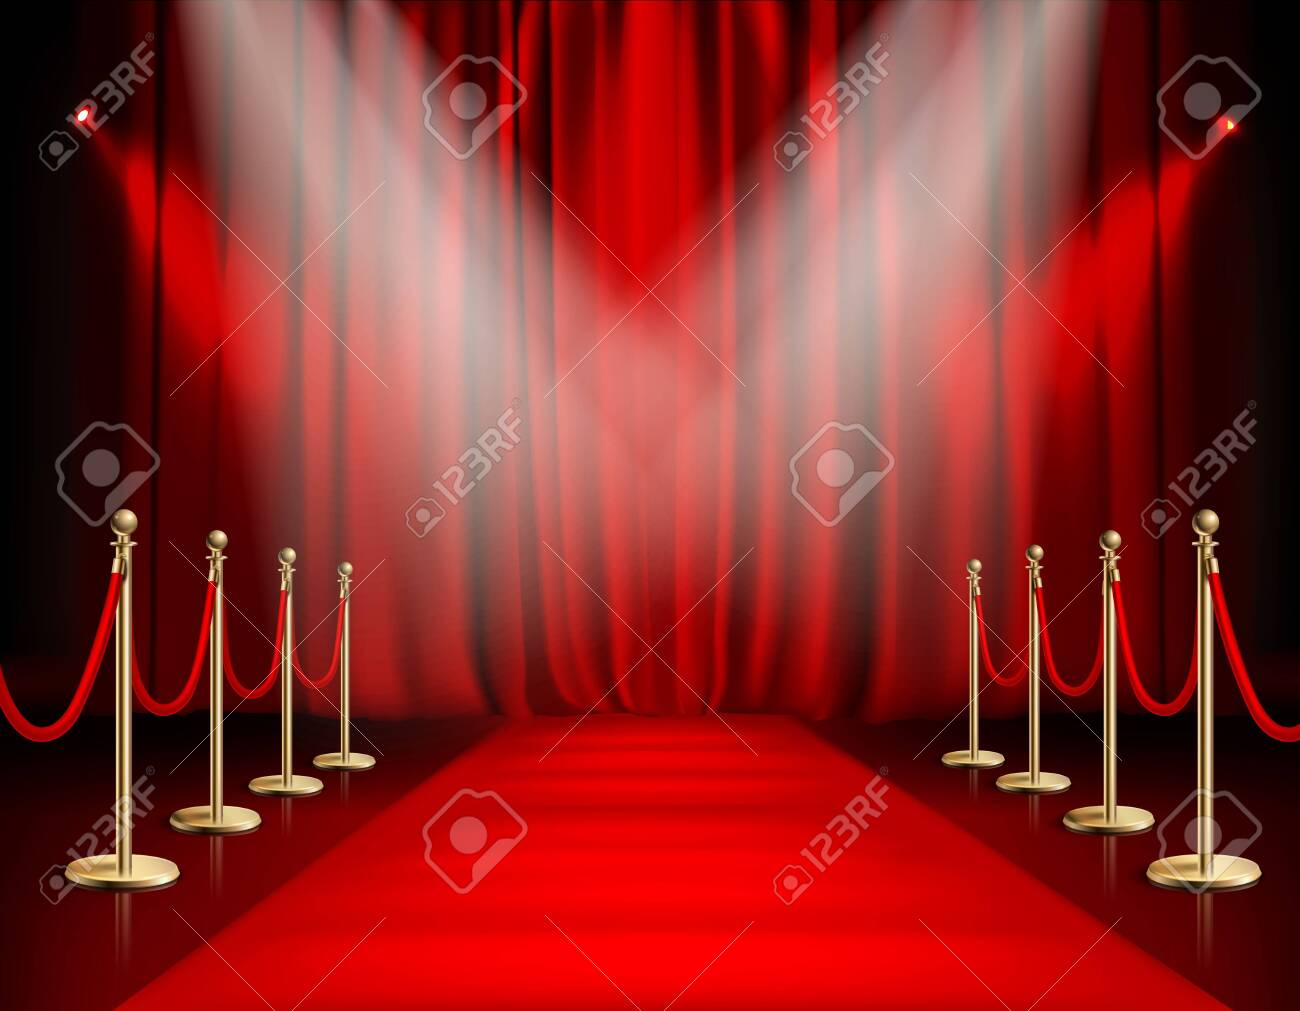 Awards show red background with carpet path golden barrier with rope on both sides and closed curtain realistic vector illustration - 128161156